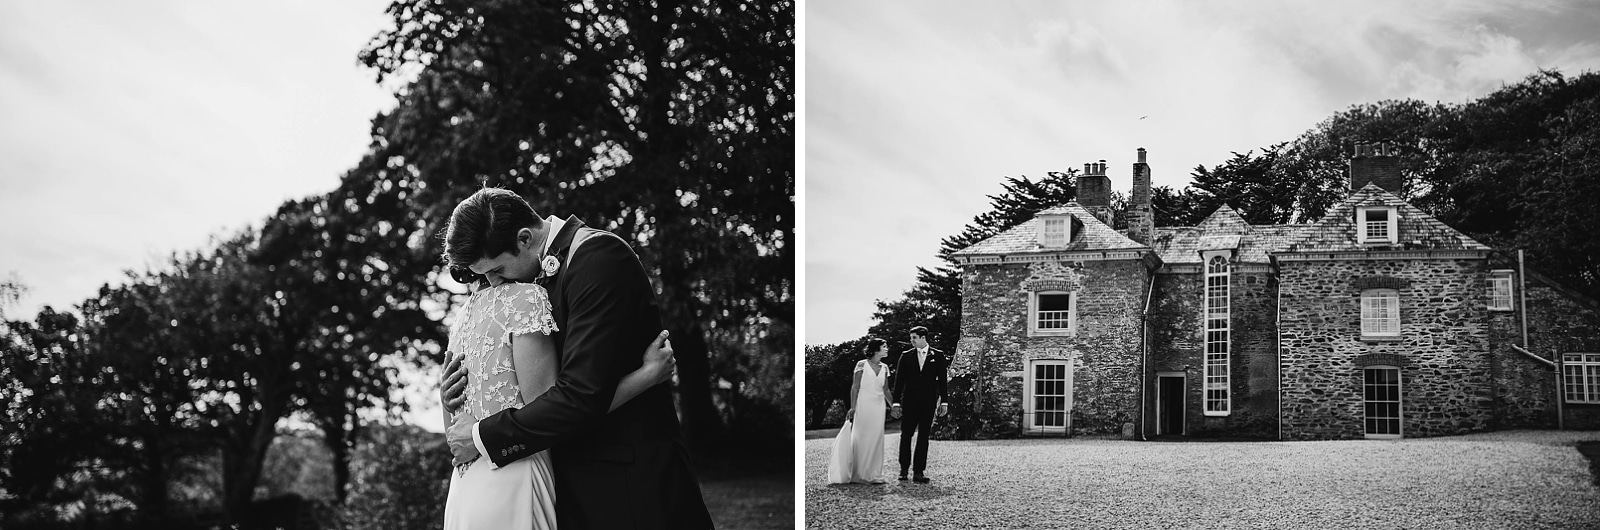 Tredudwell Manor Wedding Photography